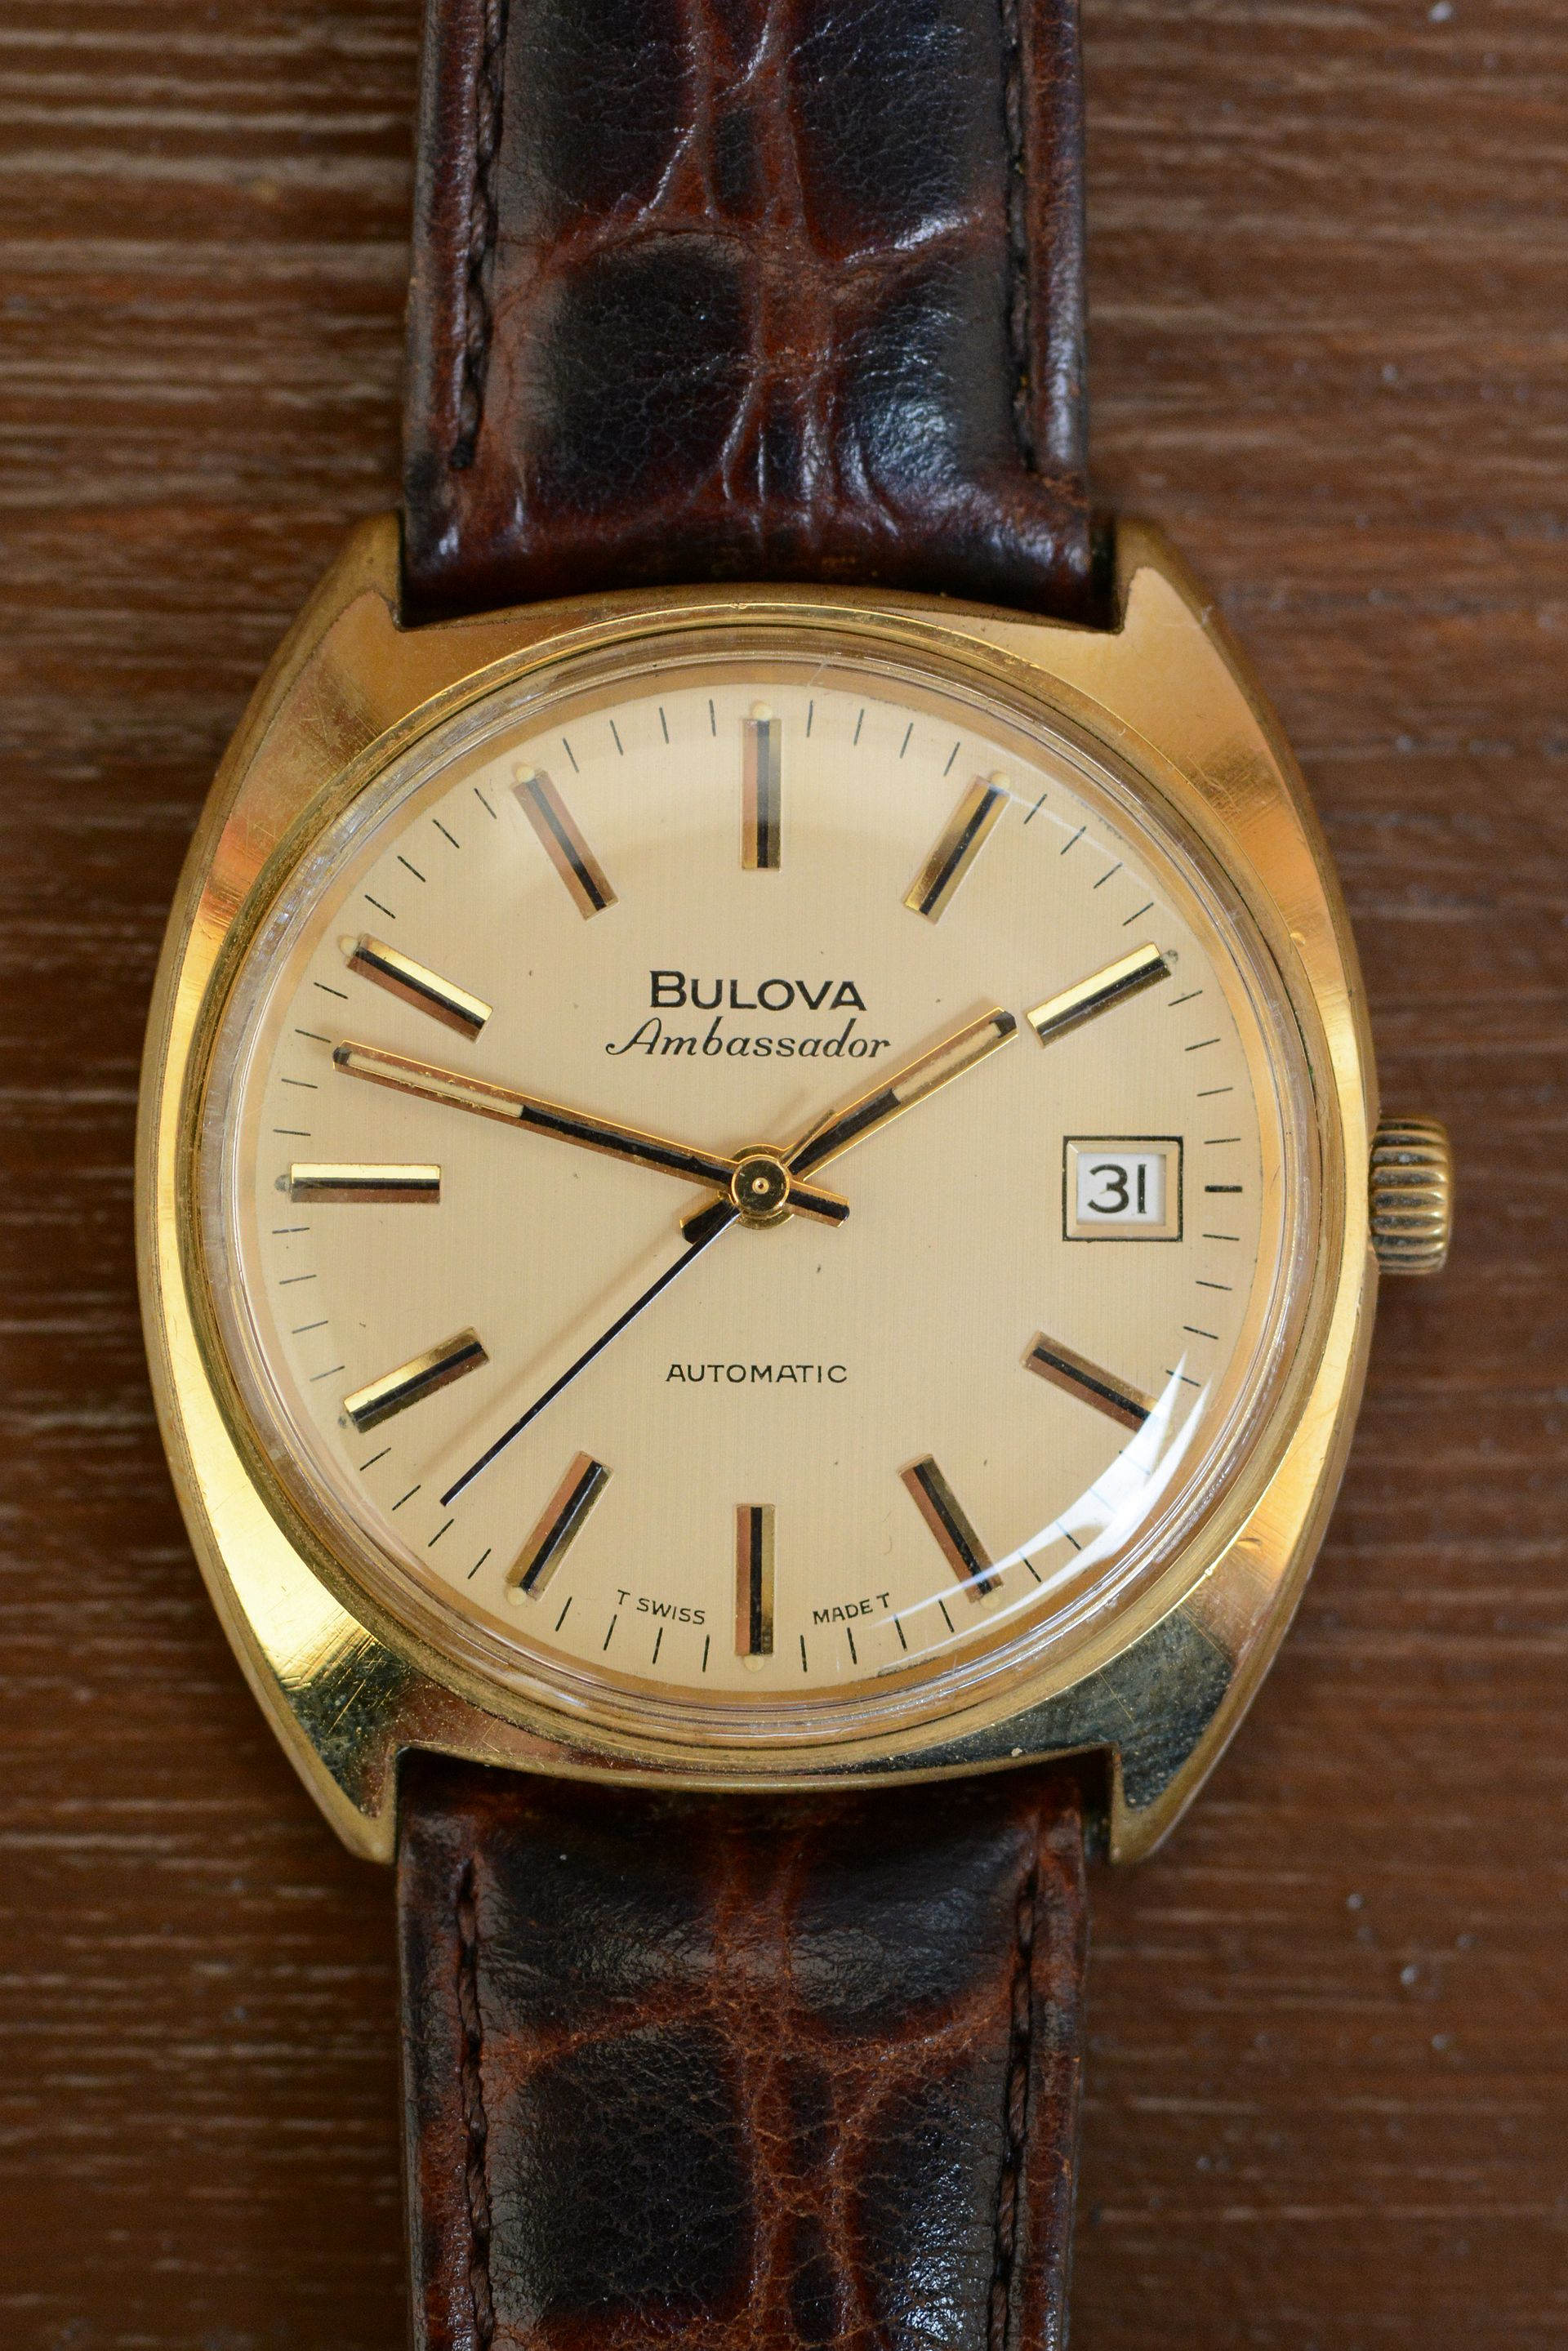 Bulova wikipedia for Watches bulova